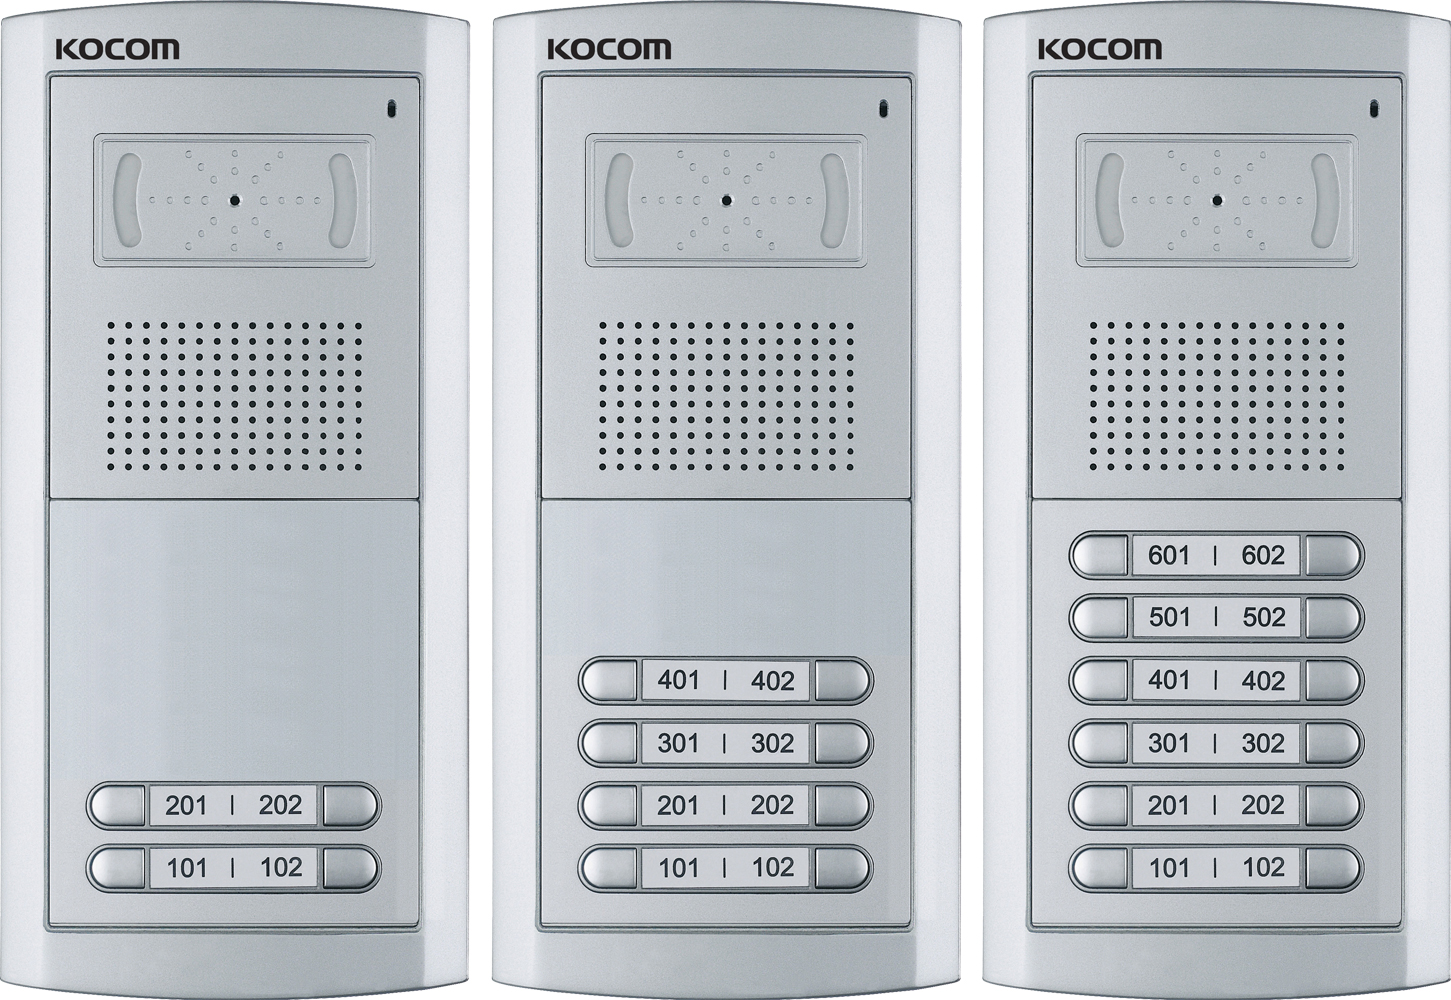 Securitex Kocom Intercom Systems